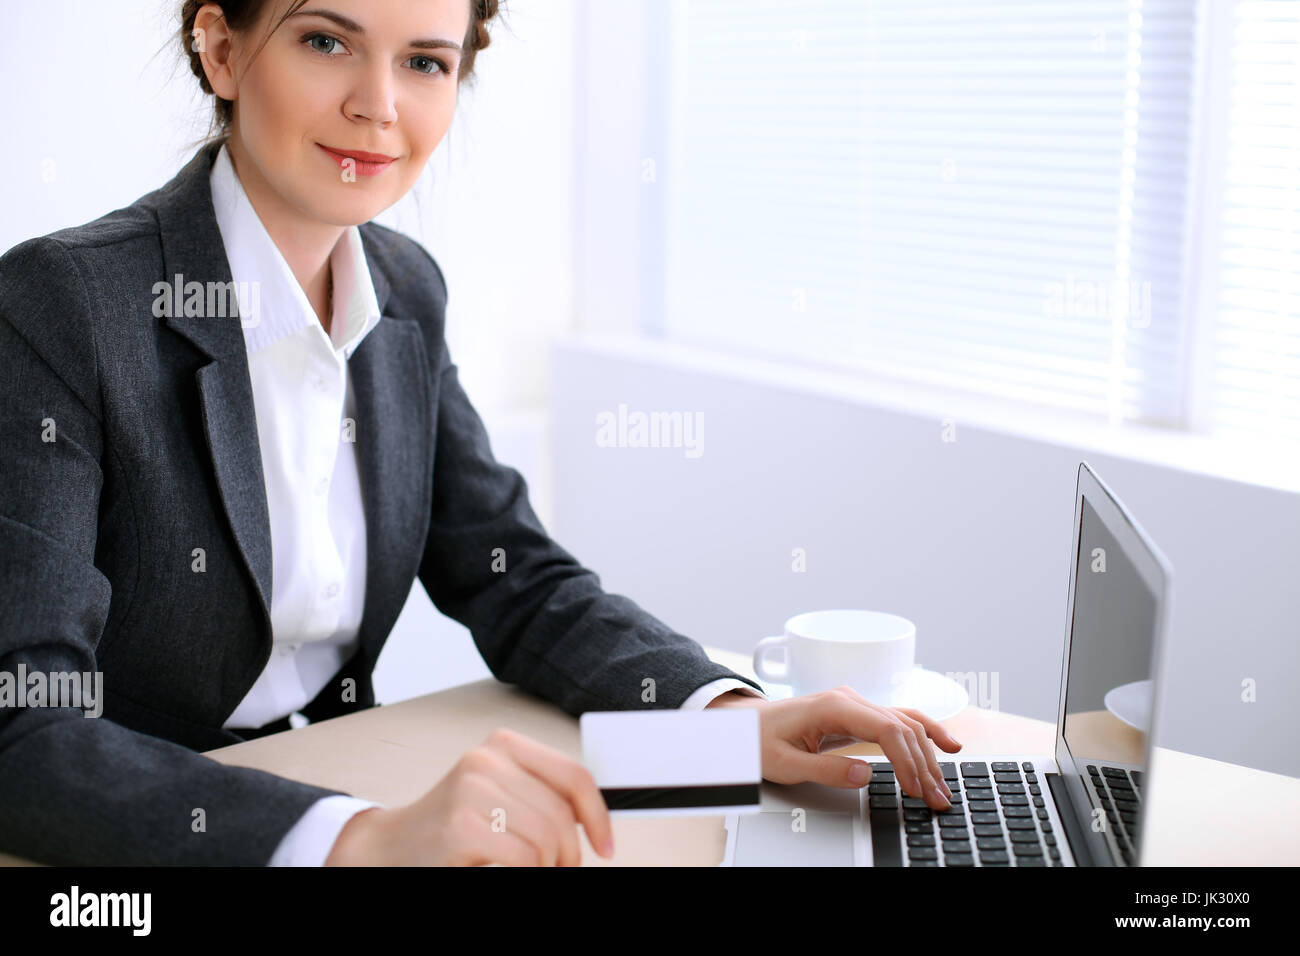 Business woman looks like yulia tymoshenko is sitting at the table and working in  white colored office . Ukrainian Stock Photo